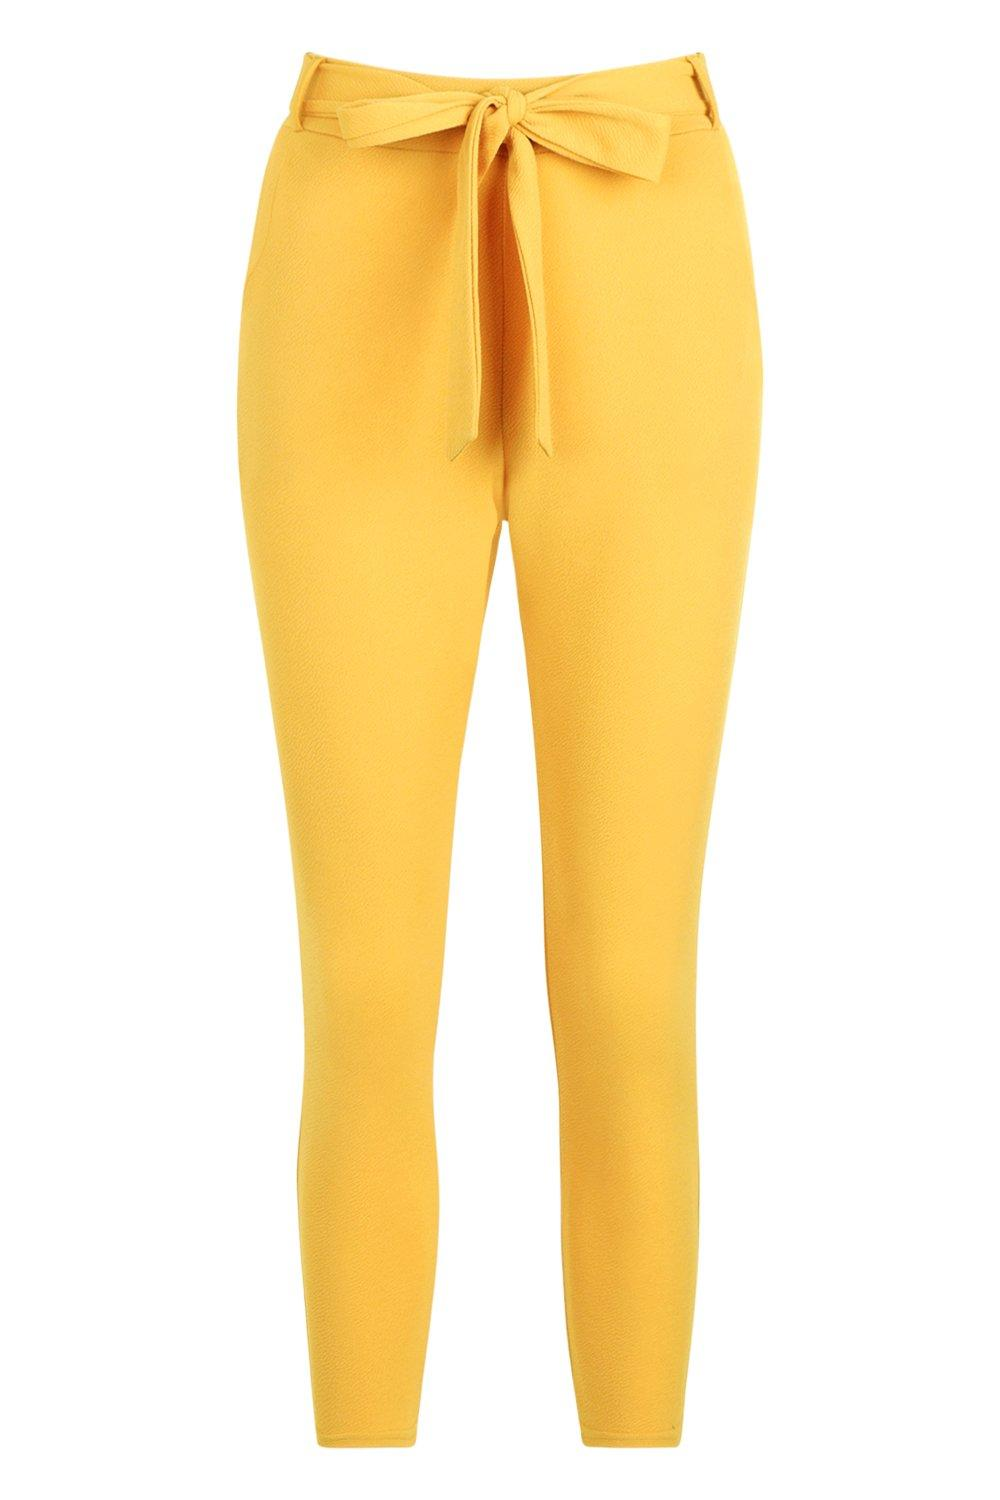 Waist Petite mustard Tie Trouser Tapered pSY1qS